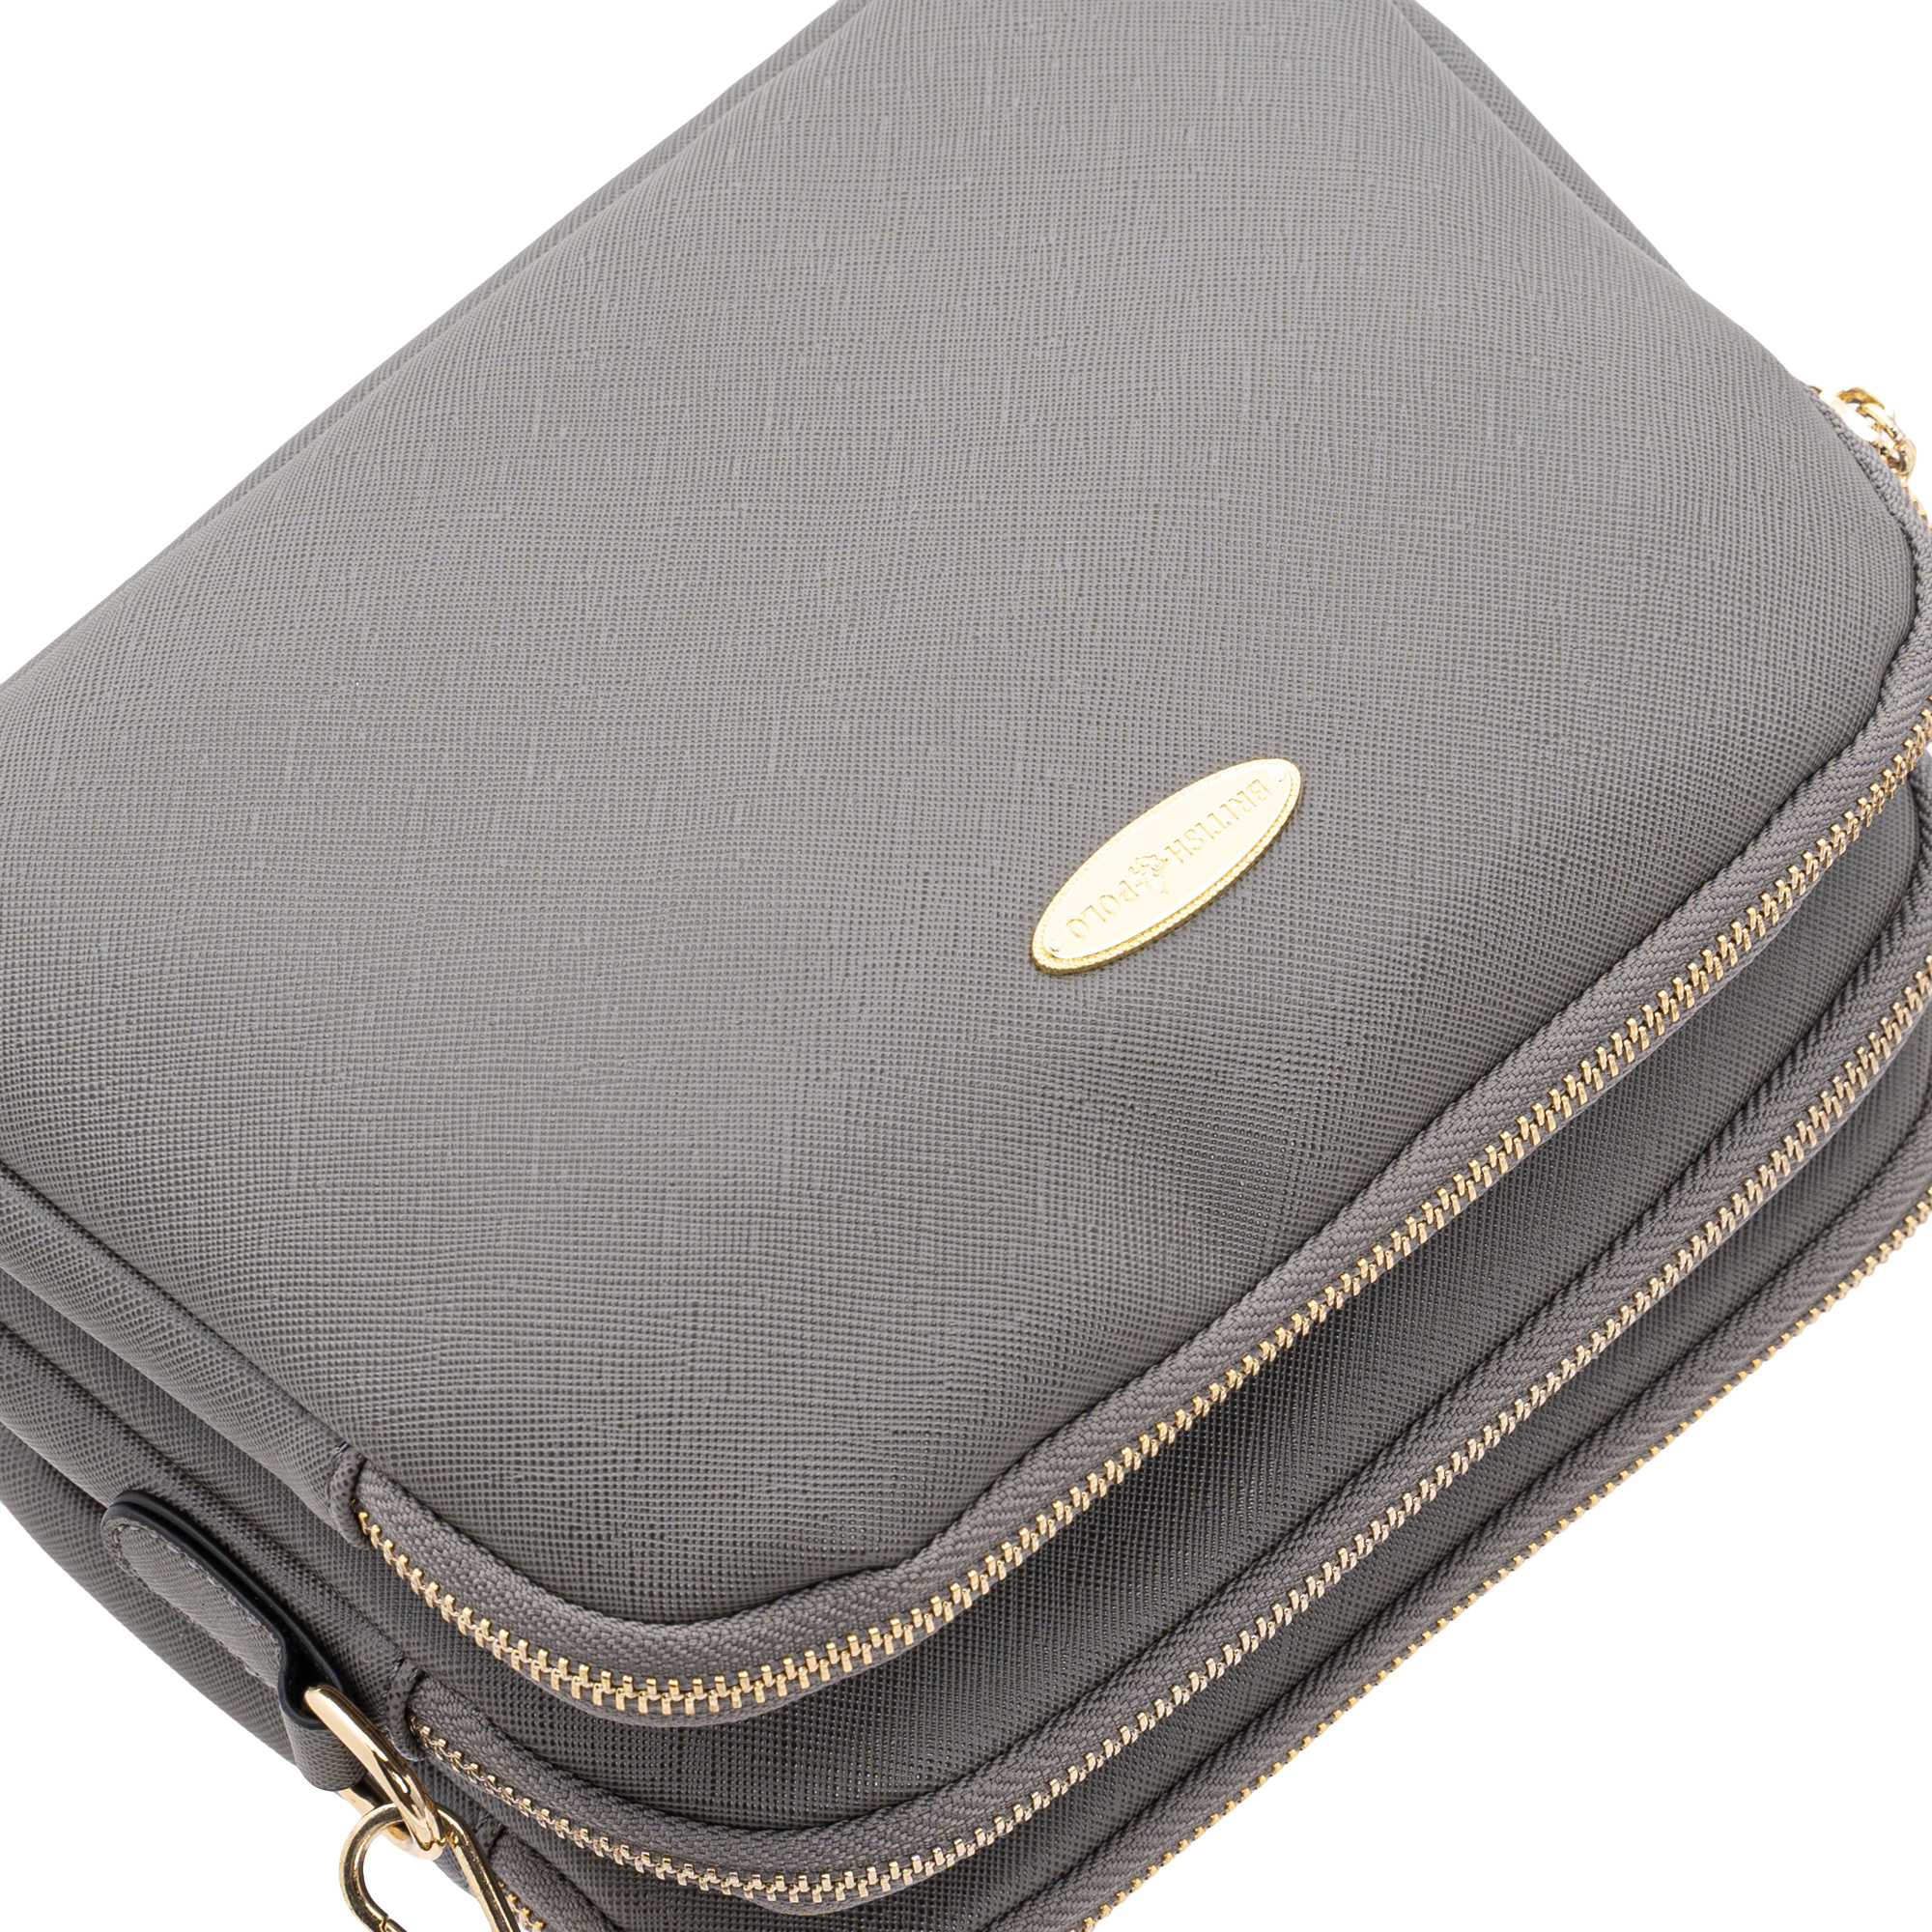 British Polo Square Crossbody Bag